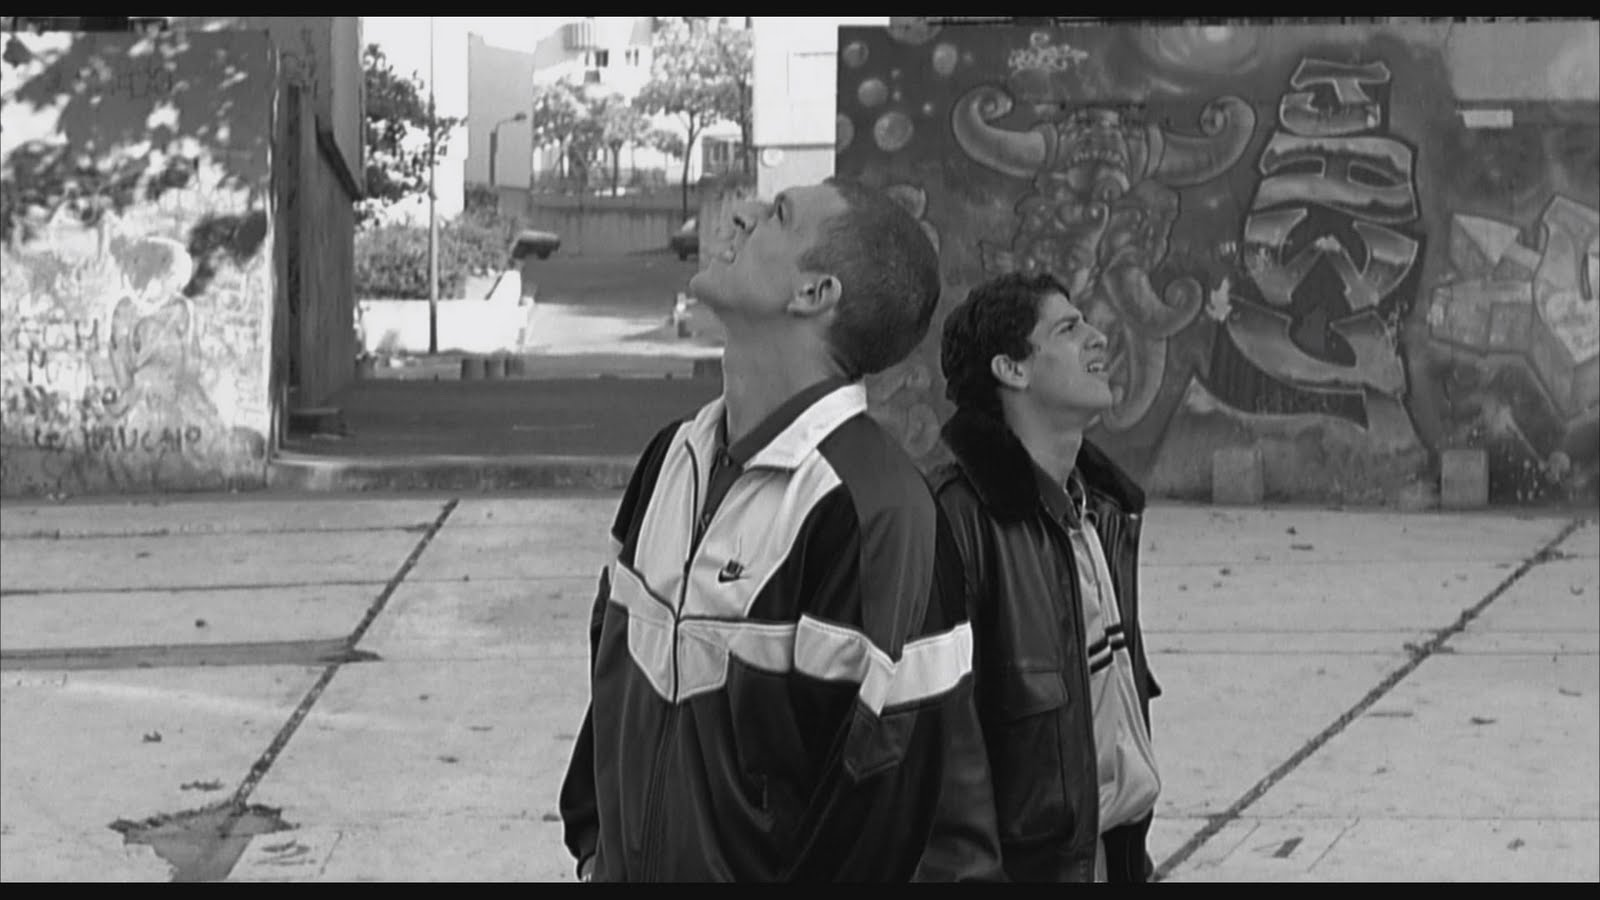 la haine La haine la haine was premiered at the cannes film festival in 1995 to great critical acclaim matthew kassovitz was awarded best director and five times as ma.